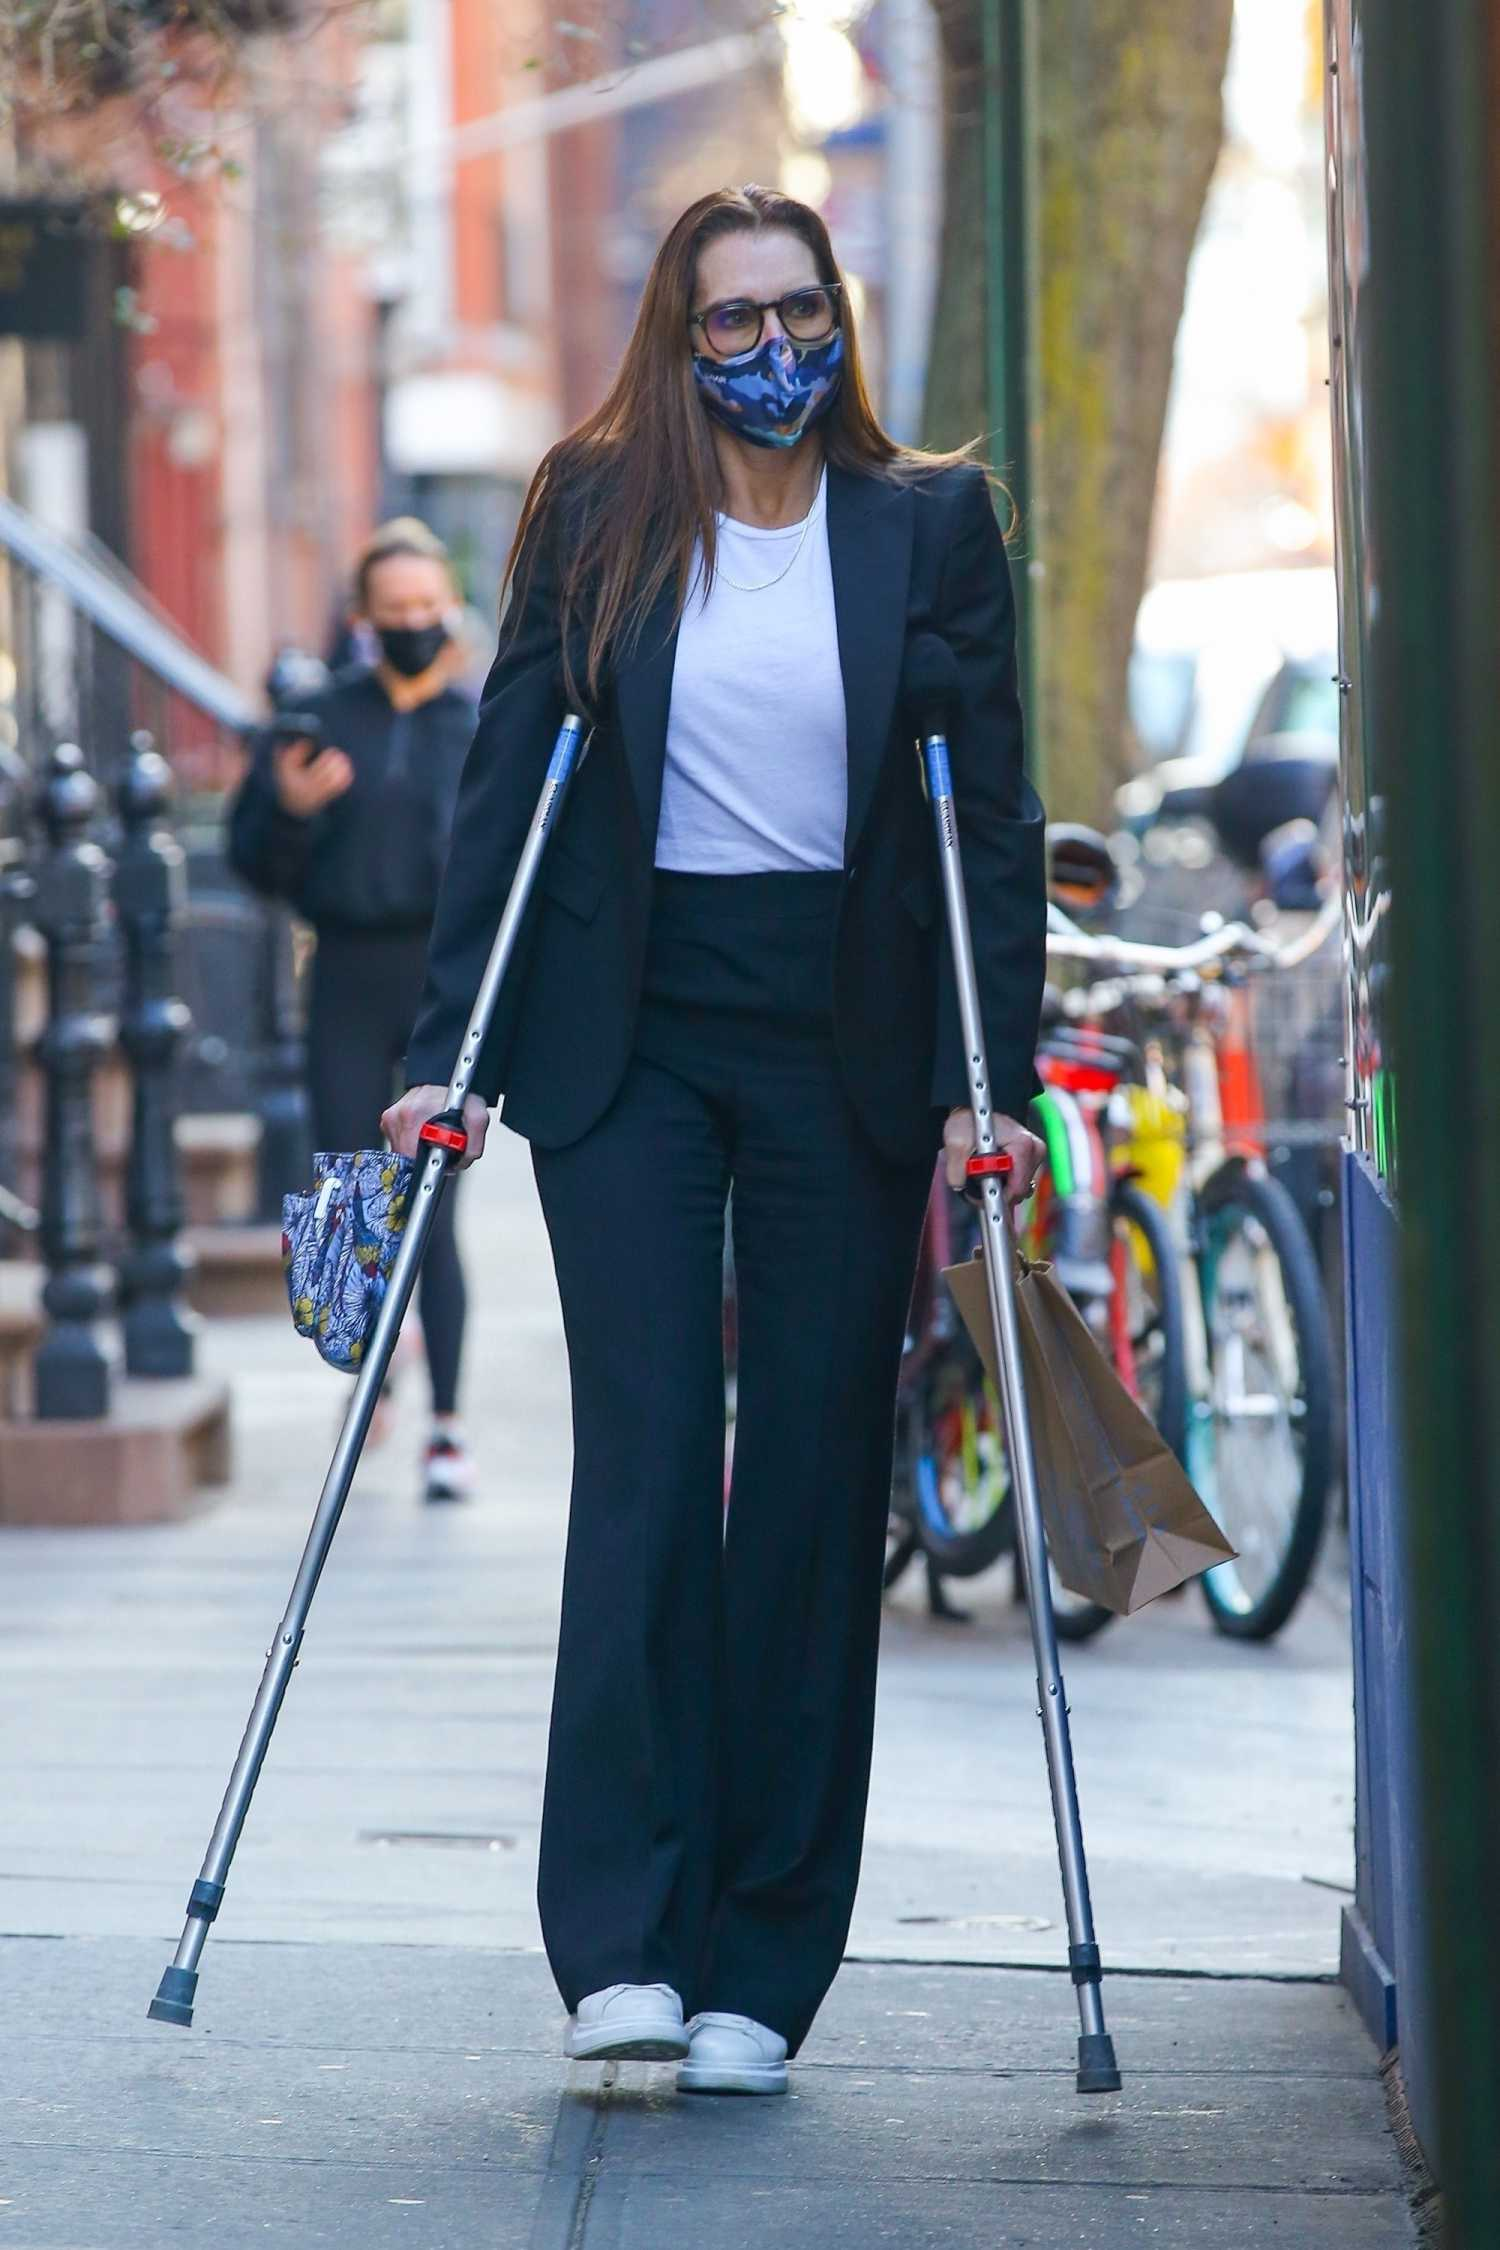 Brooke Shields on Crutches Was Seen Out with a Friend in